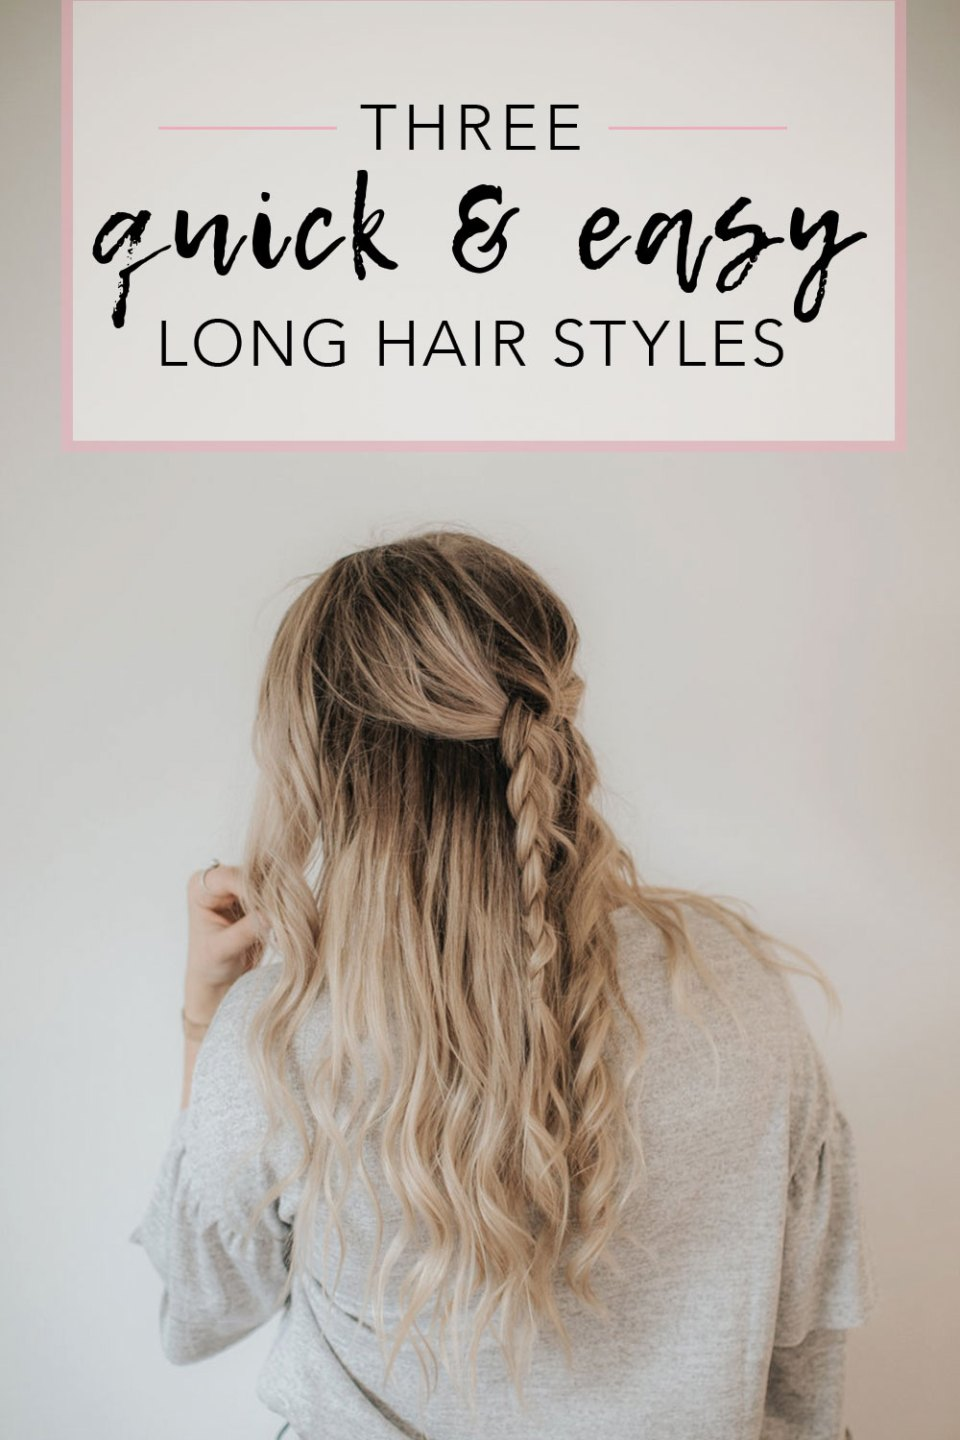 How to style long thick hair | 3 fast and easy long hairstyle ideas for thick hair